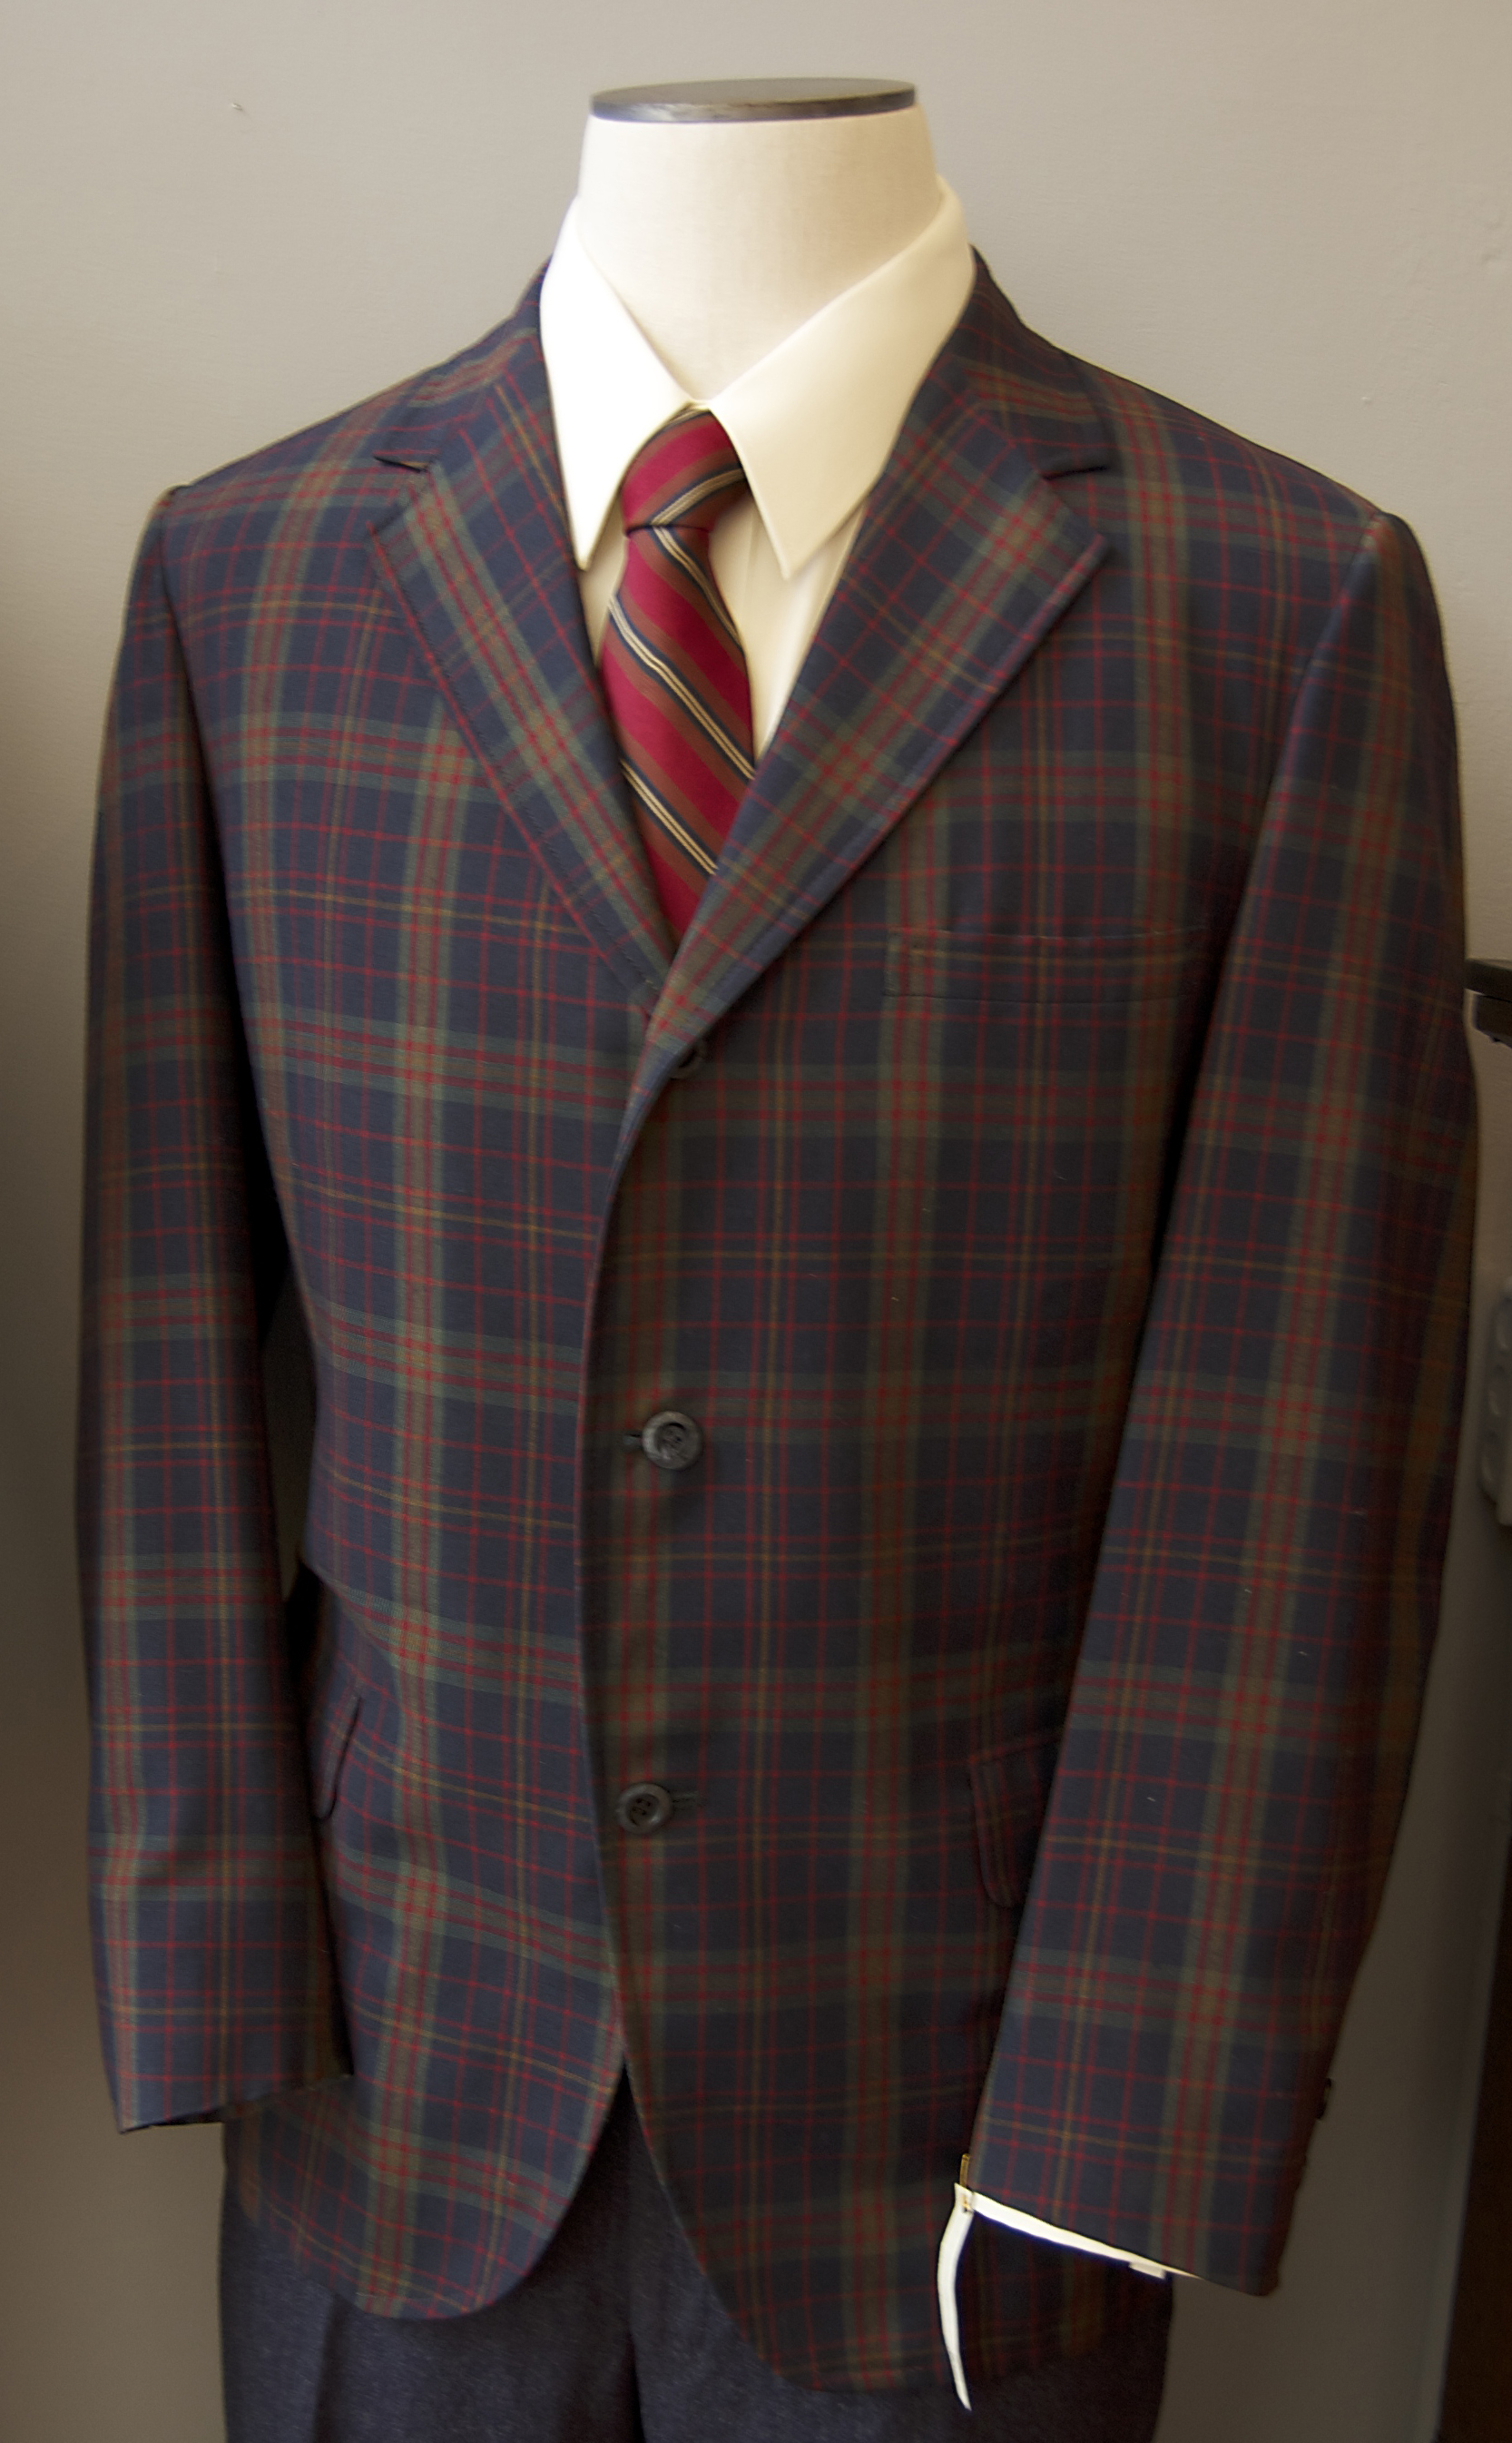 plaidblazer.jpg